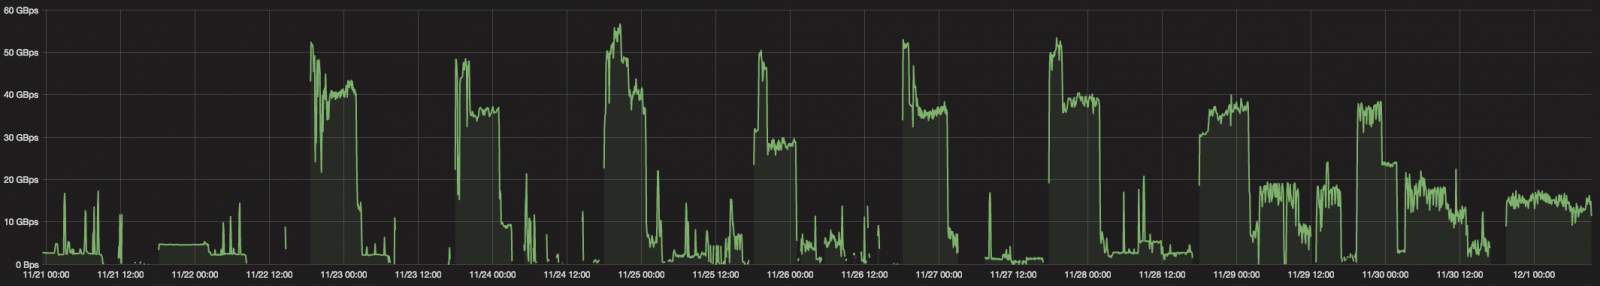 Daily DDoS attacks detected in the past 10 days